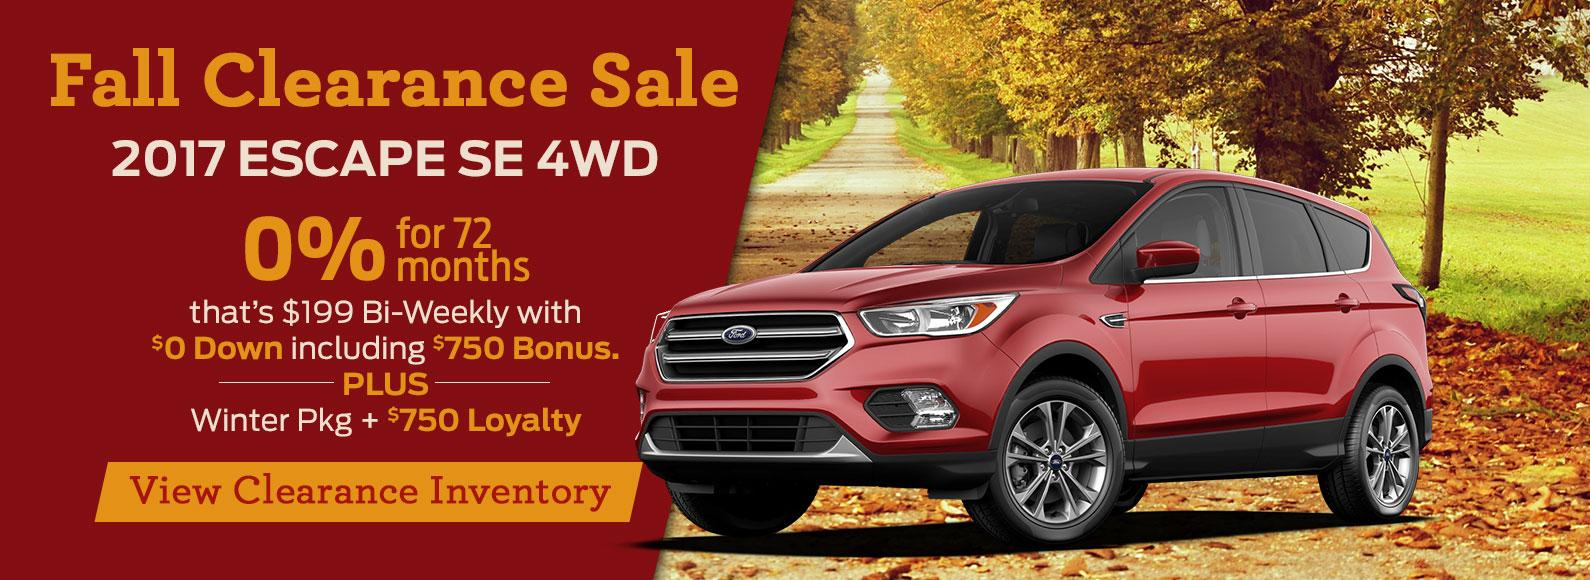 2017 Escape Clearance Westview Ford